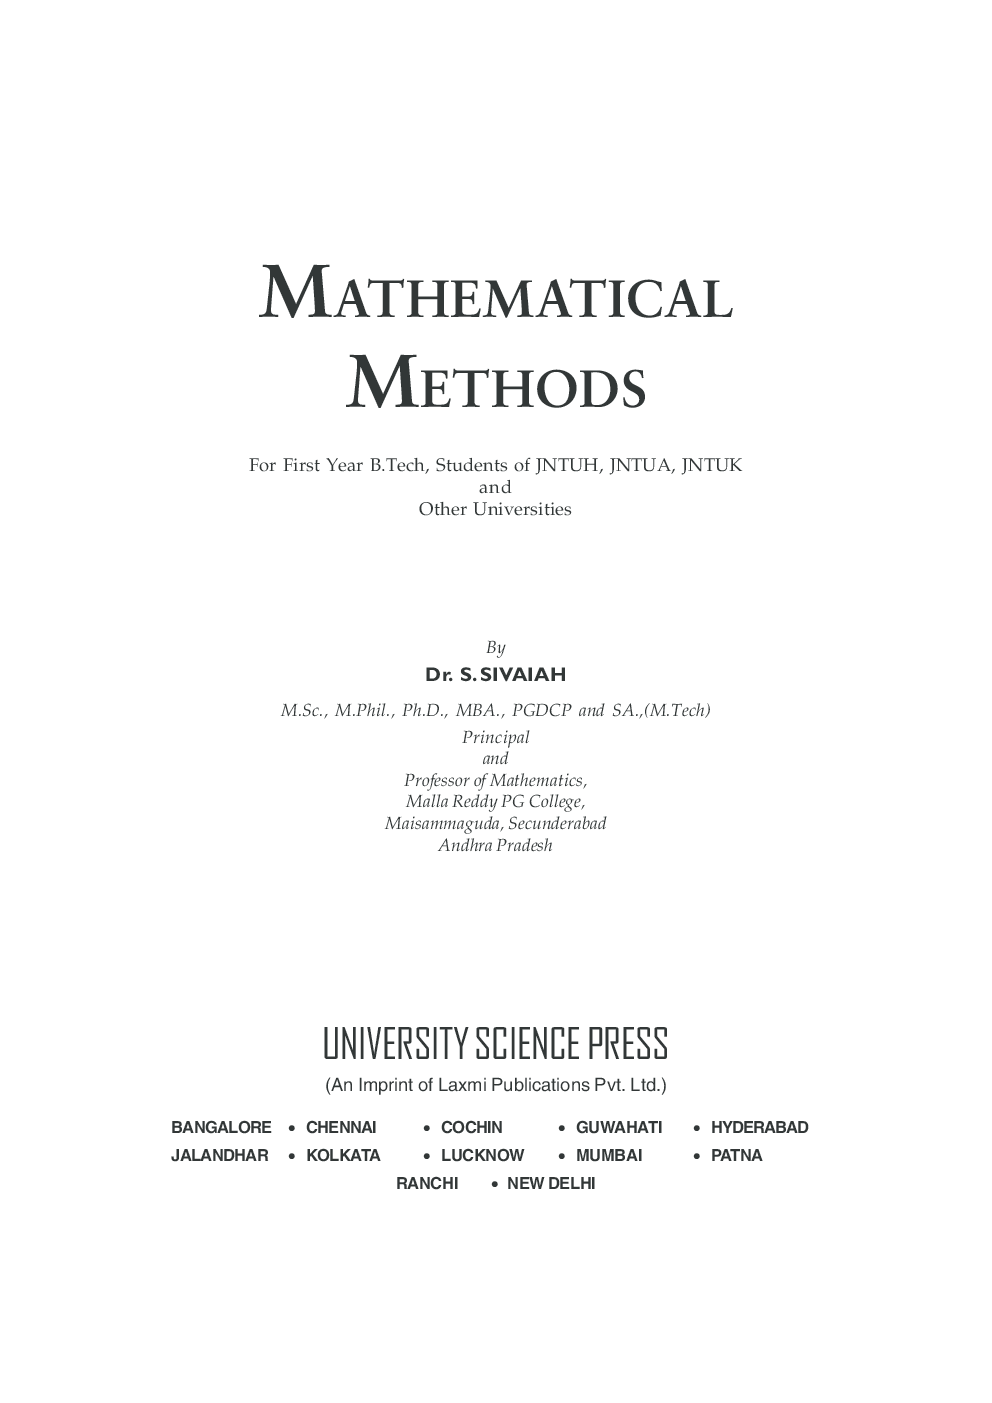 Mathematical Methods By Dr. S. Sivaiah - Page 2